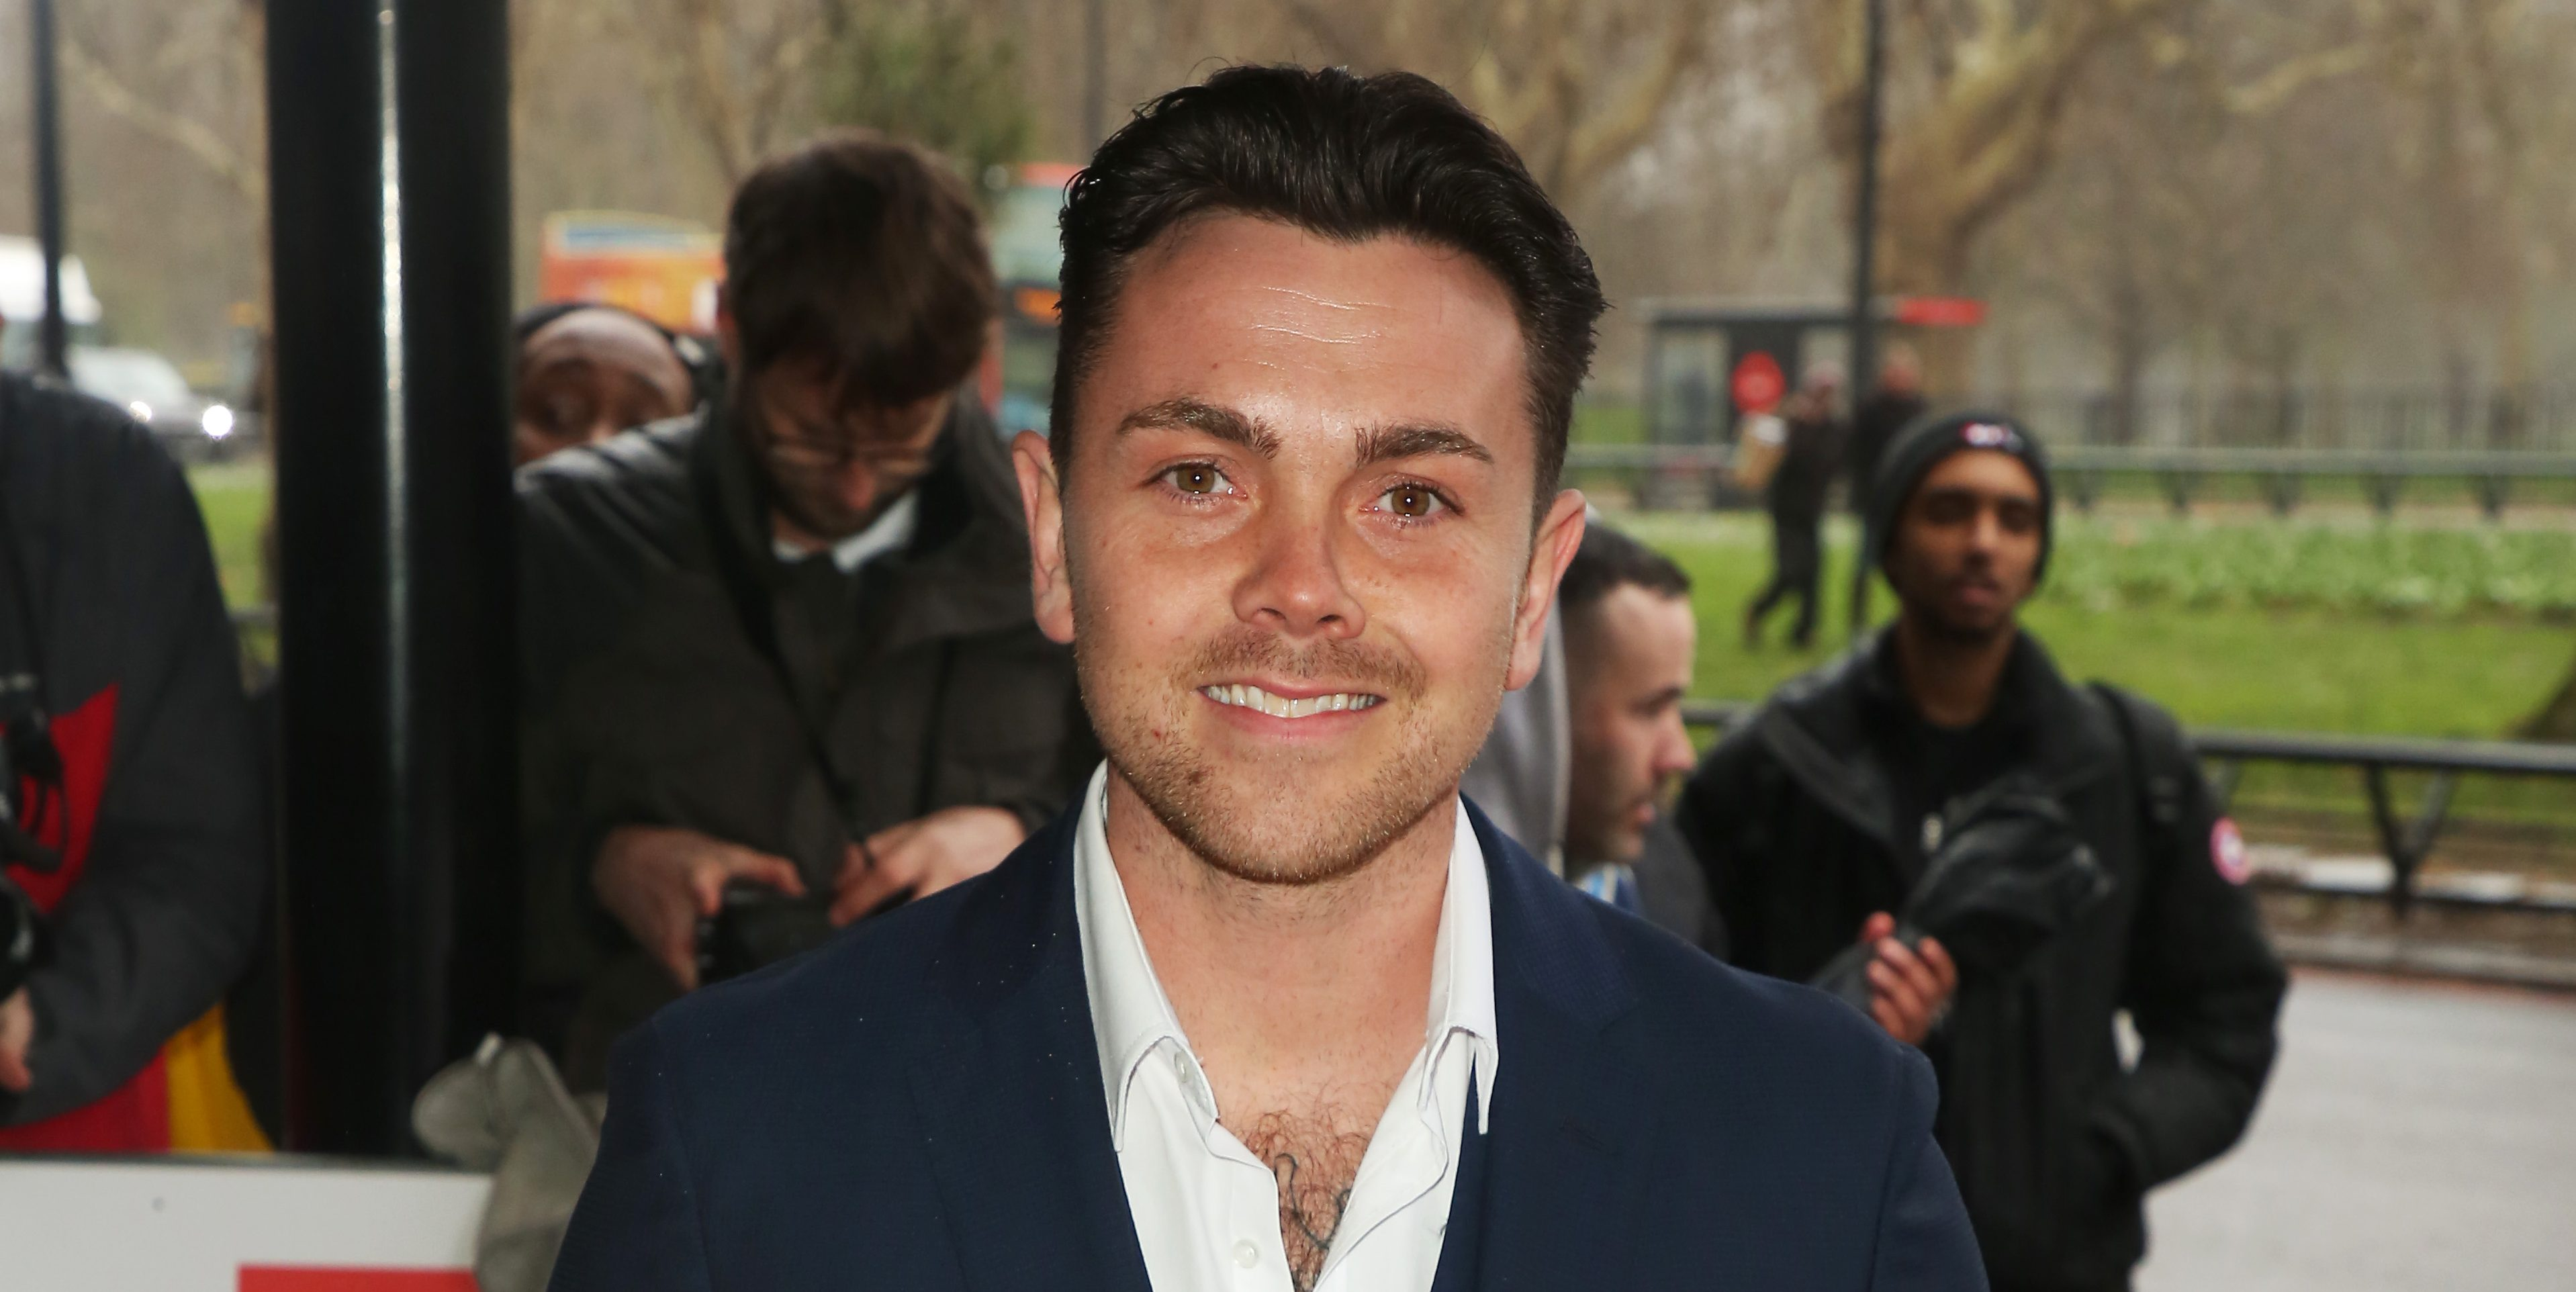 Former Hollyoaks actor Ray Quinn reveals engagement to girlfriend Emily Ashleigh